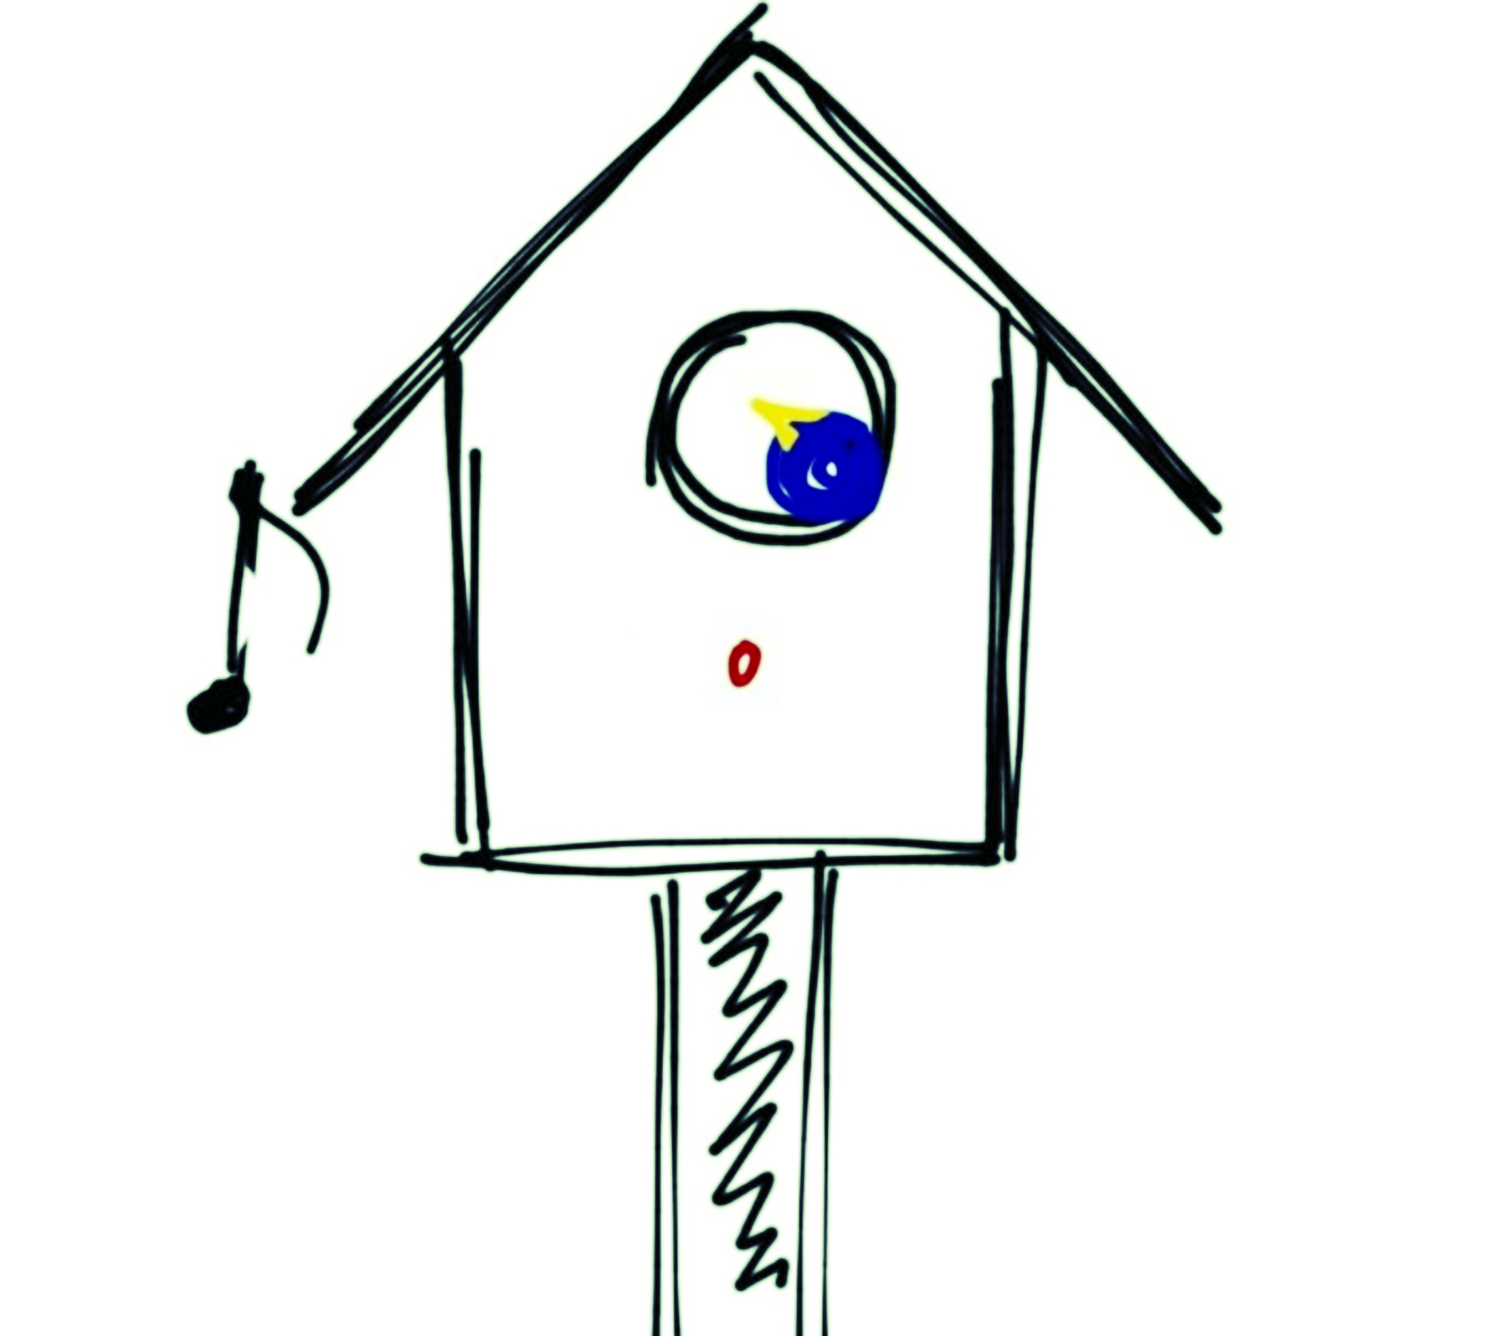 Birdhouse Sound